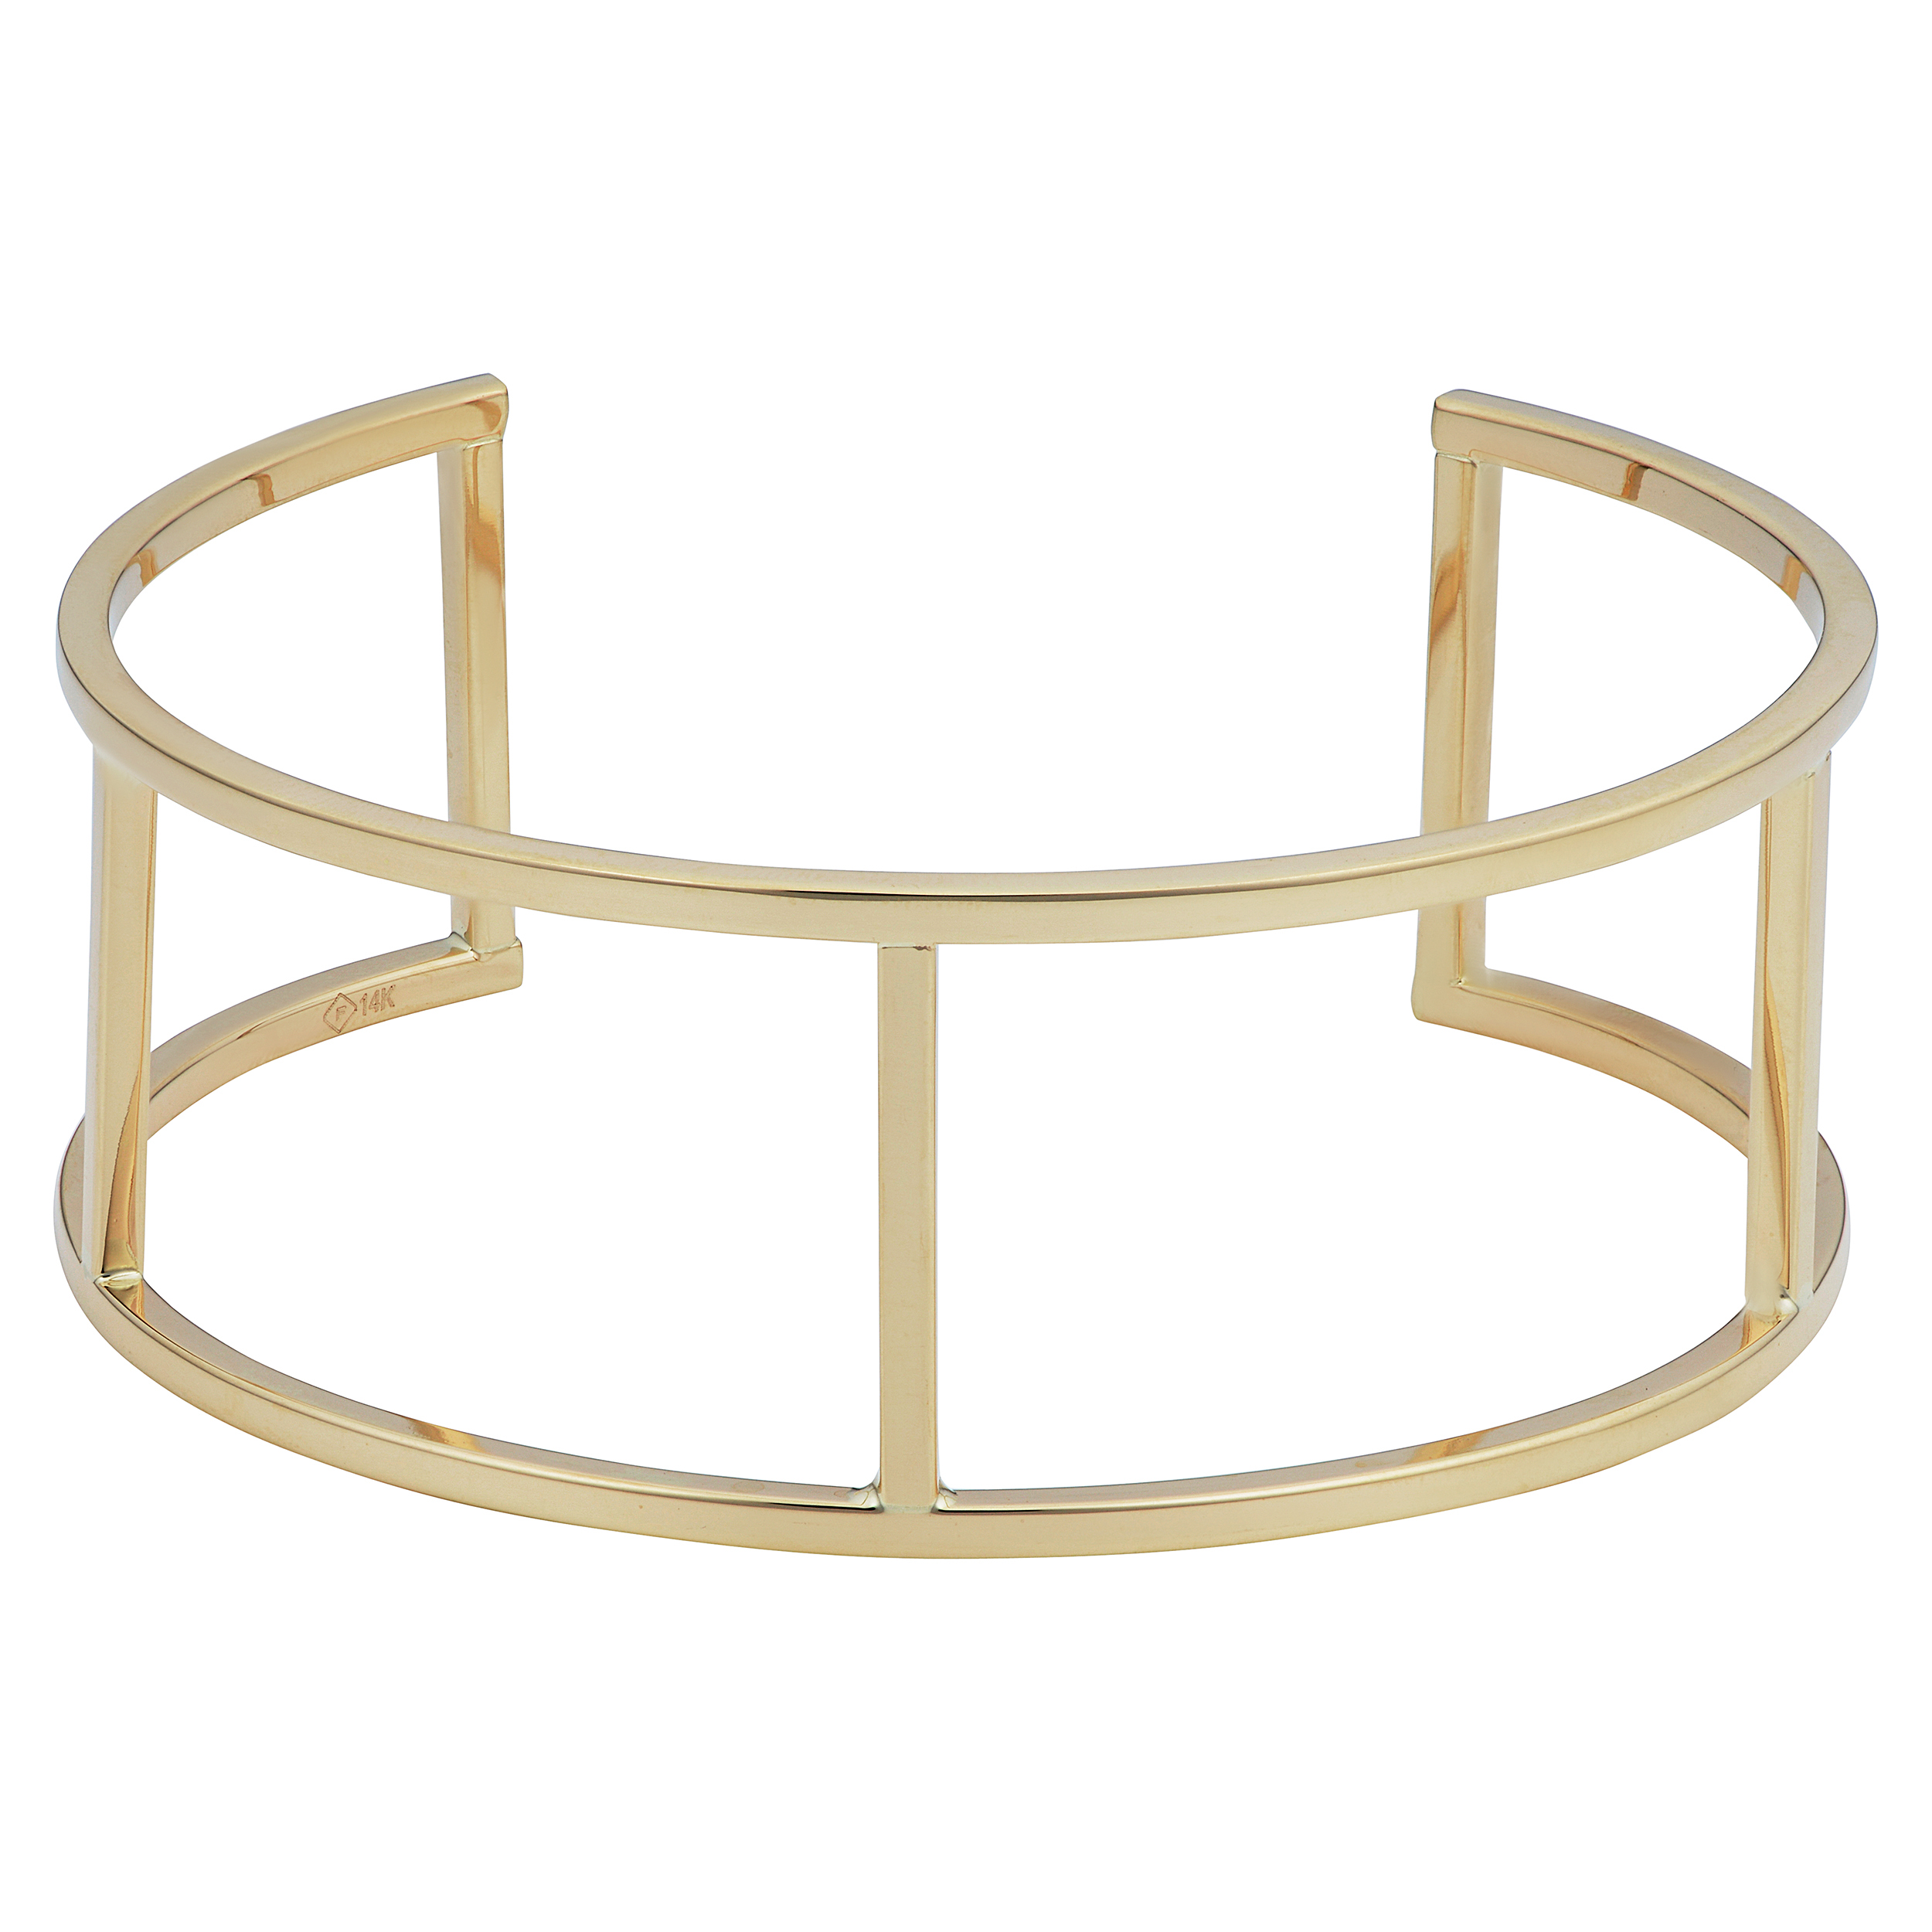 14k Yellow Gold Bar Women's Cuff Bracelet, 7.5″